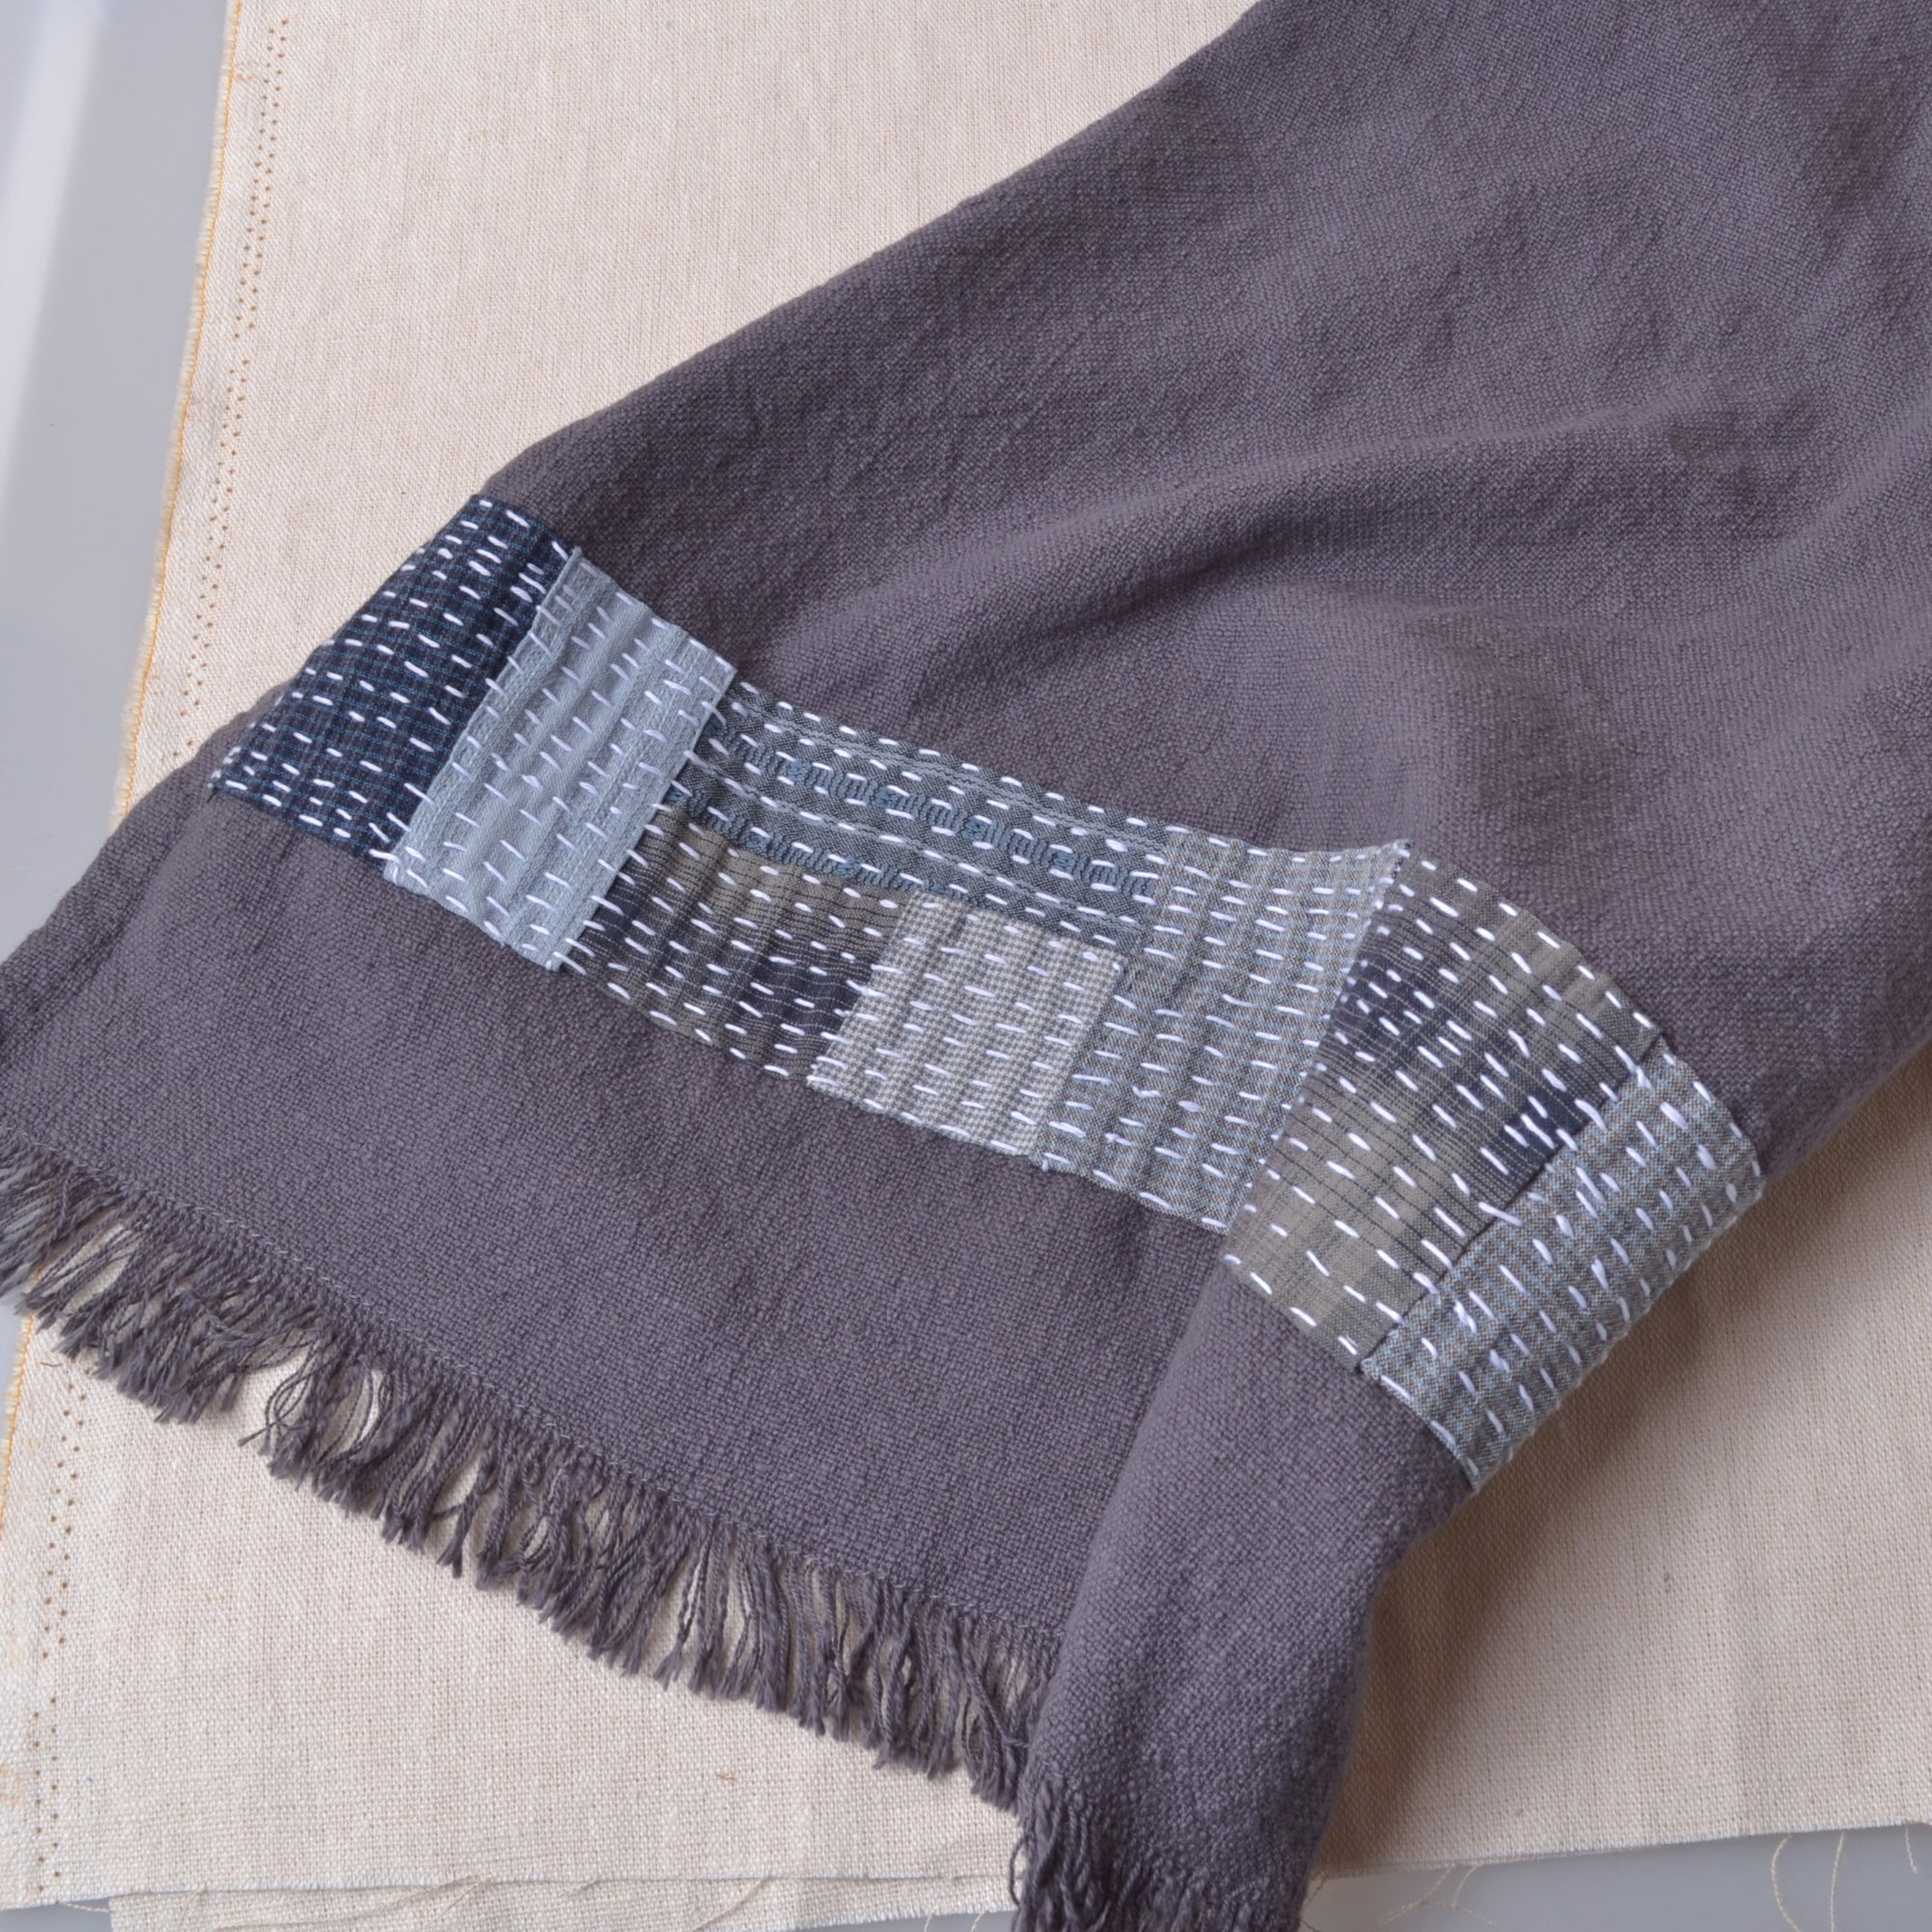 towel for stitching